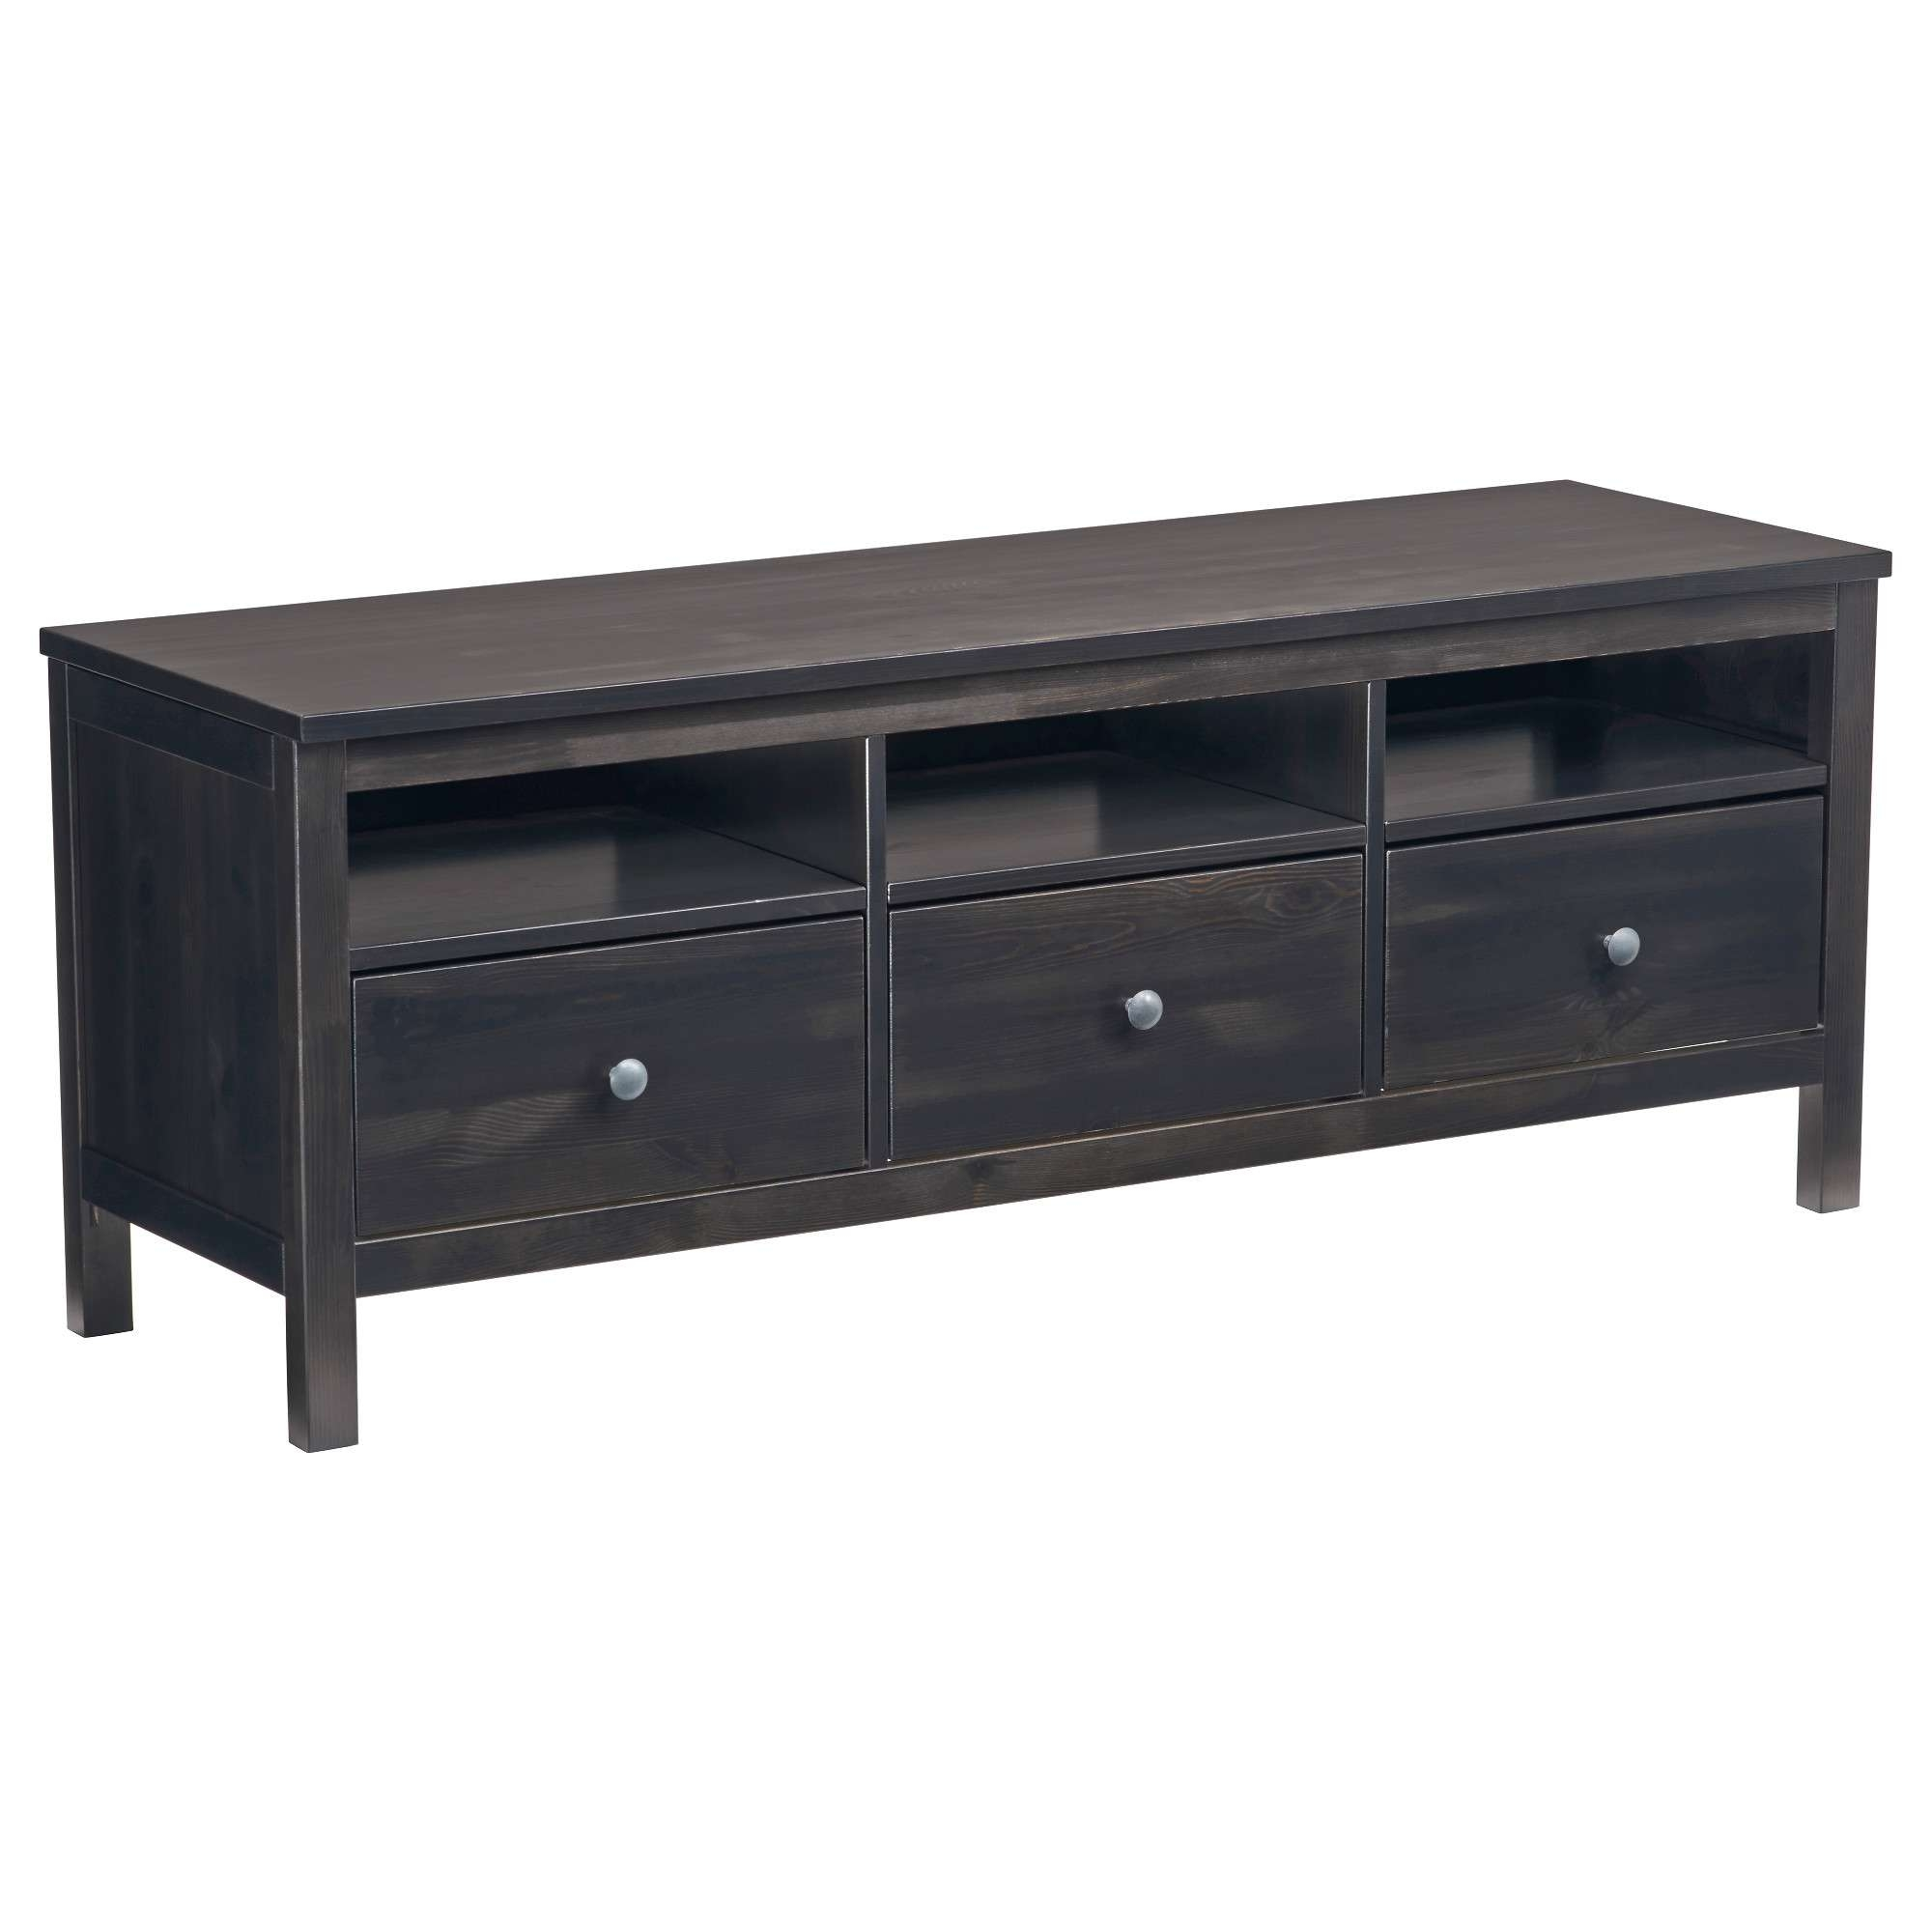 Tv Stands & Entertainment Centers – Ikea Throughout Tv Stands At Ikea (View 14 of 15)